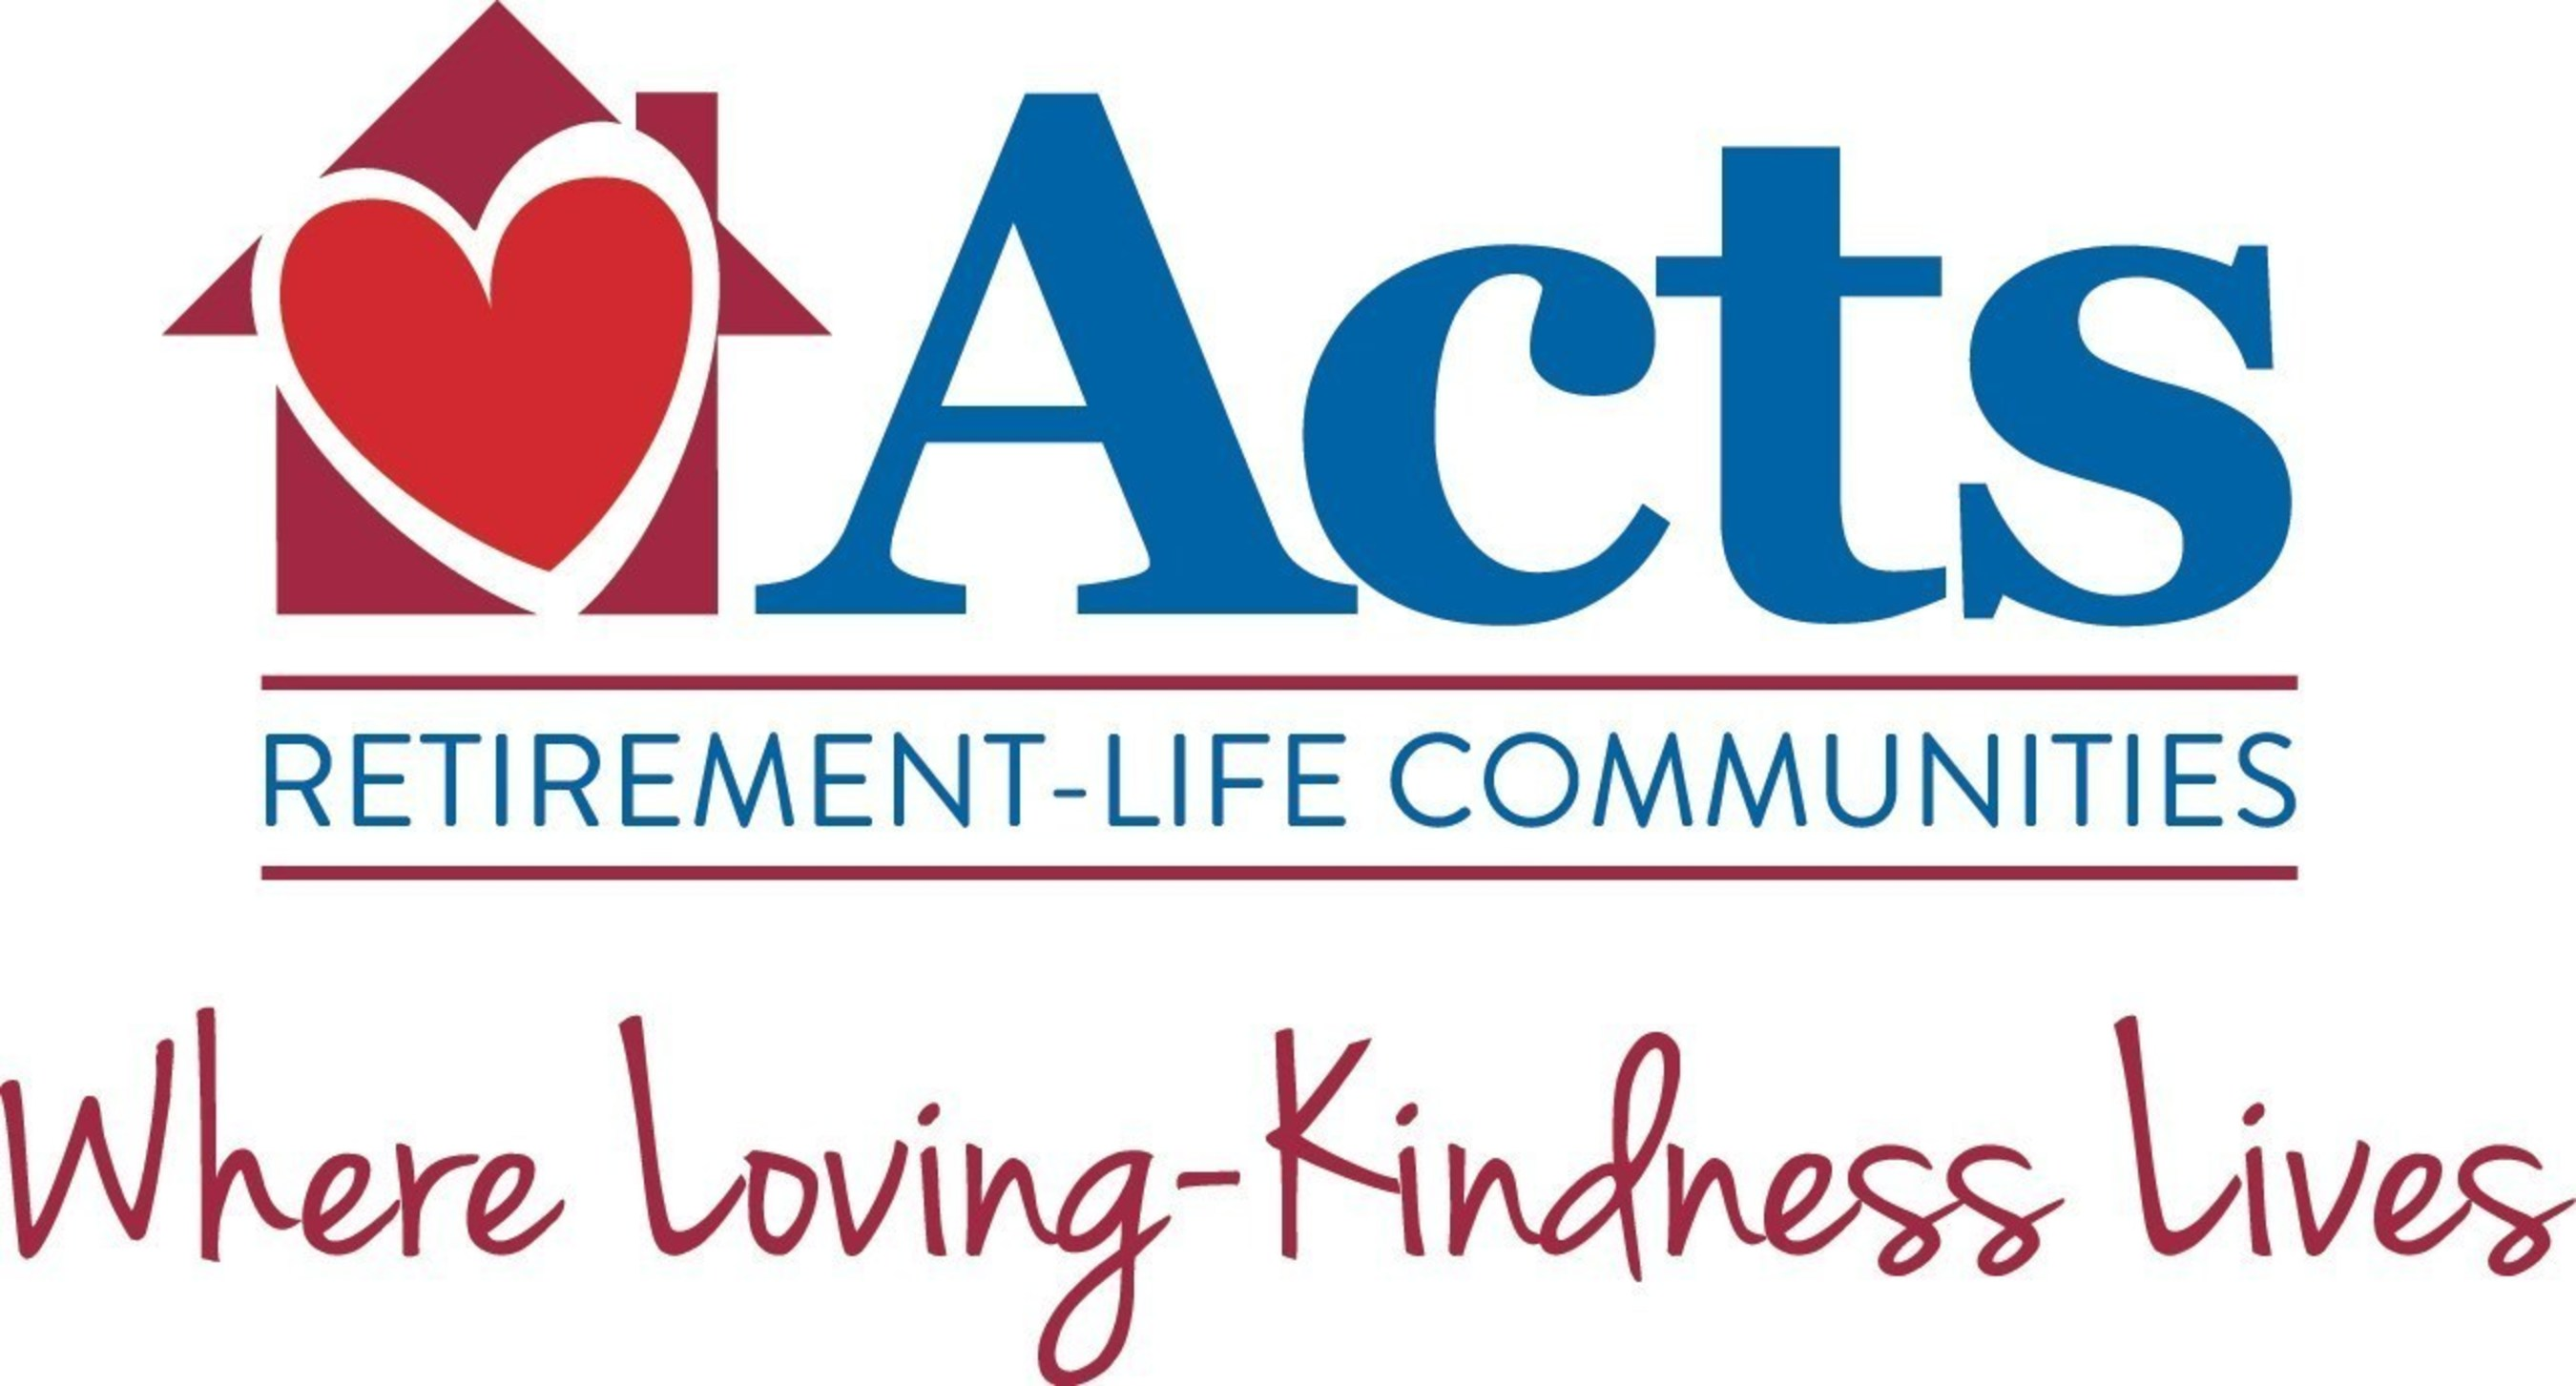 Acts Retirement-Life Communities Launches Brand Refresh with New Logo, Tagline and Website